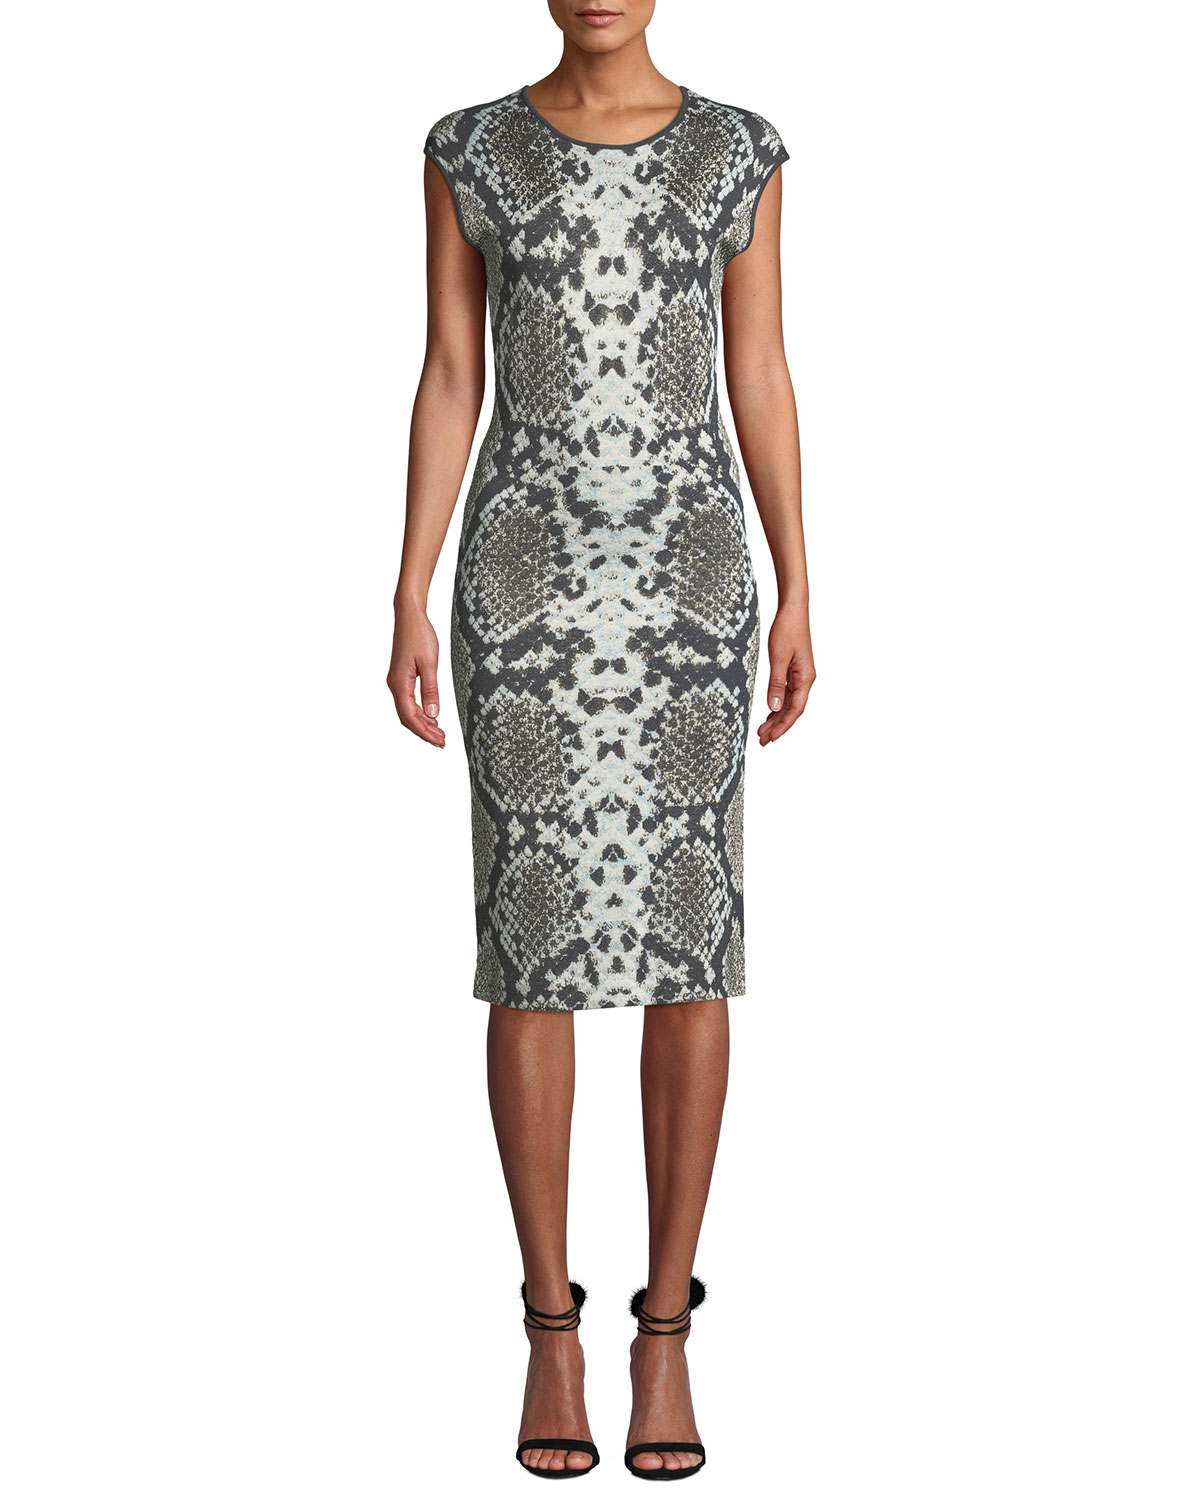 fdcaa71af2 NK32 Naeem Khan Cap-Sleeve Python-Print Cocktail Dress